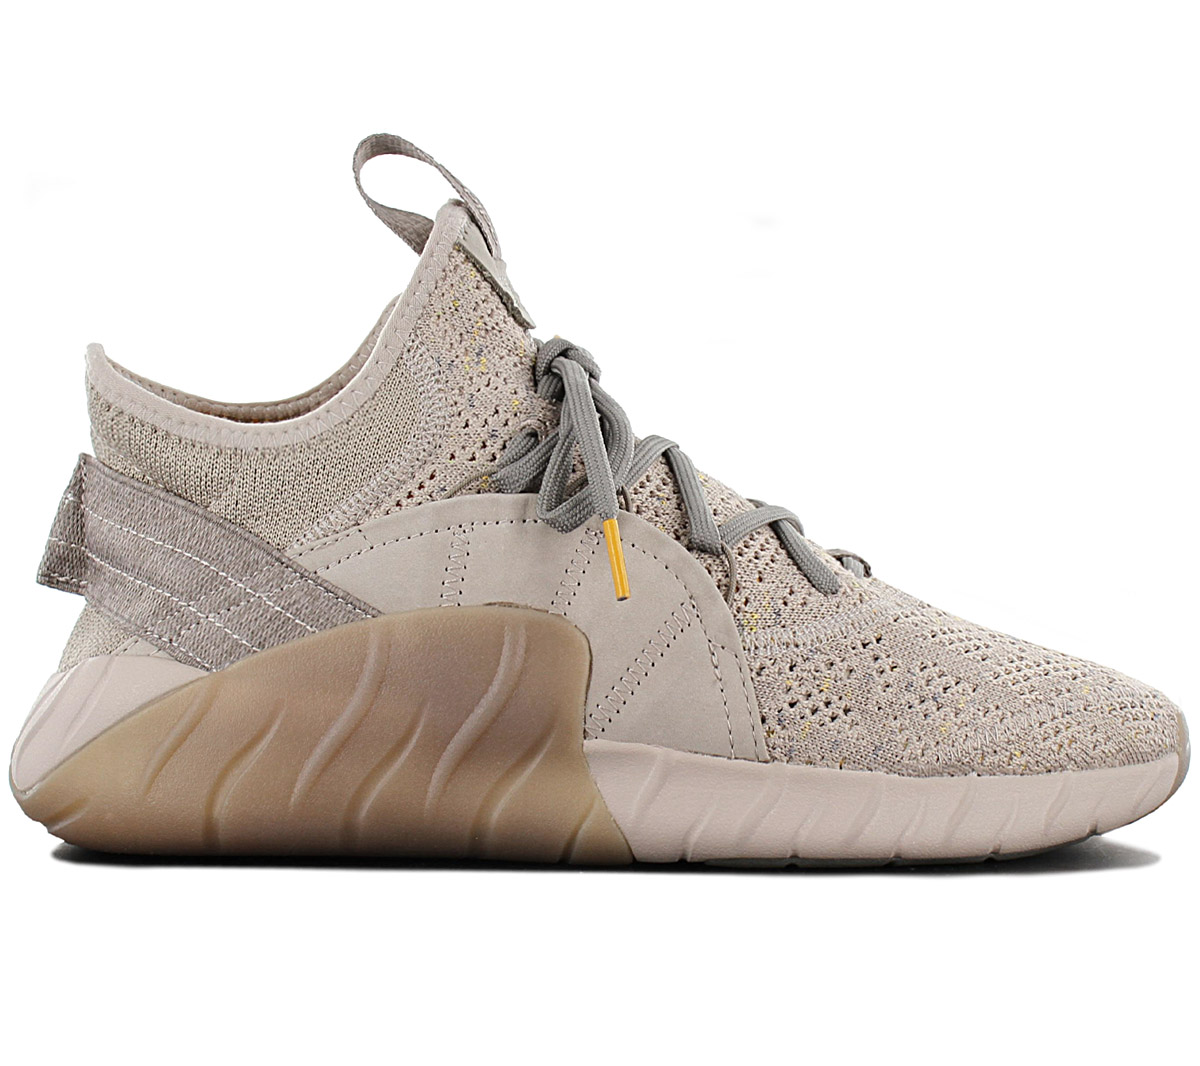 on sale fe880 f748e Details about Adidas Originals Tubular Rise Men's Sneakers BY4139  Sesam-Braun Shoes Trainers